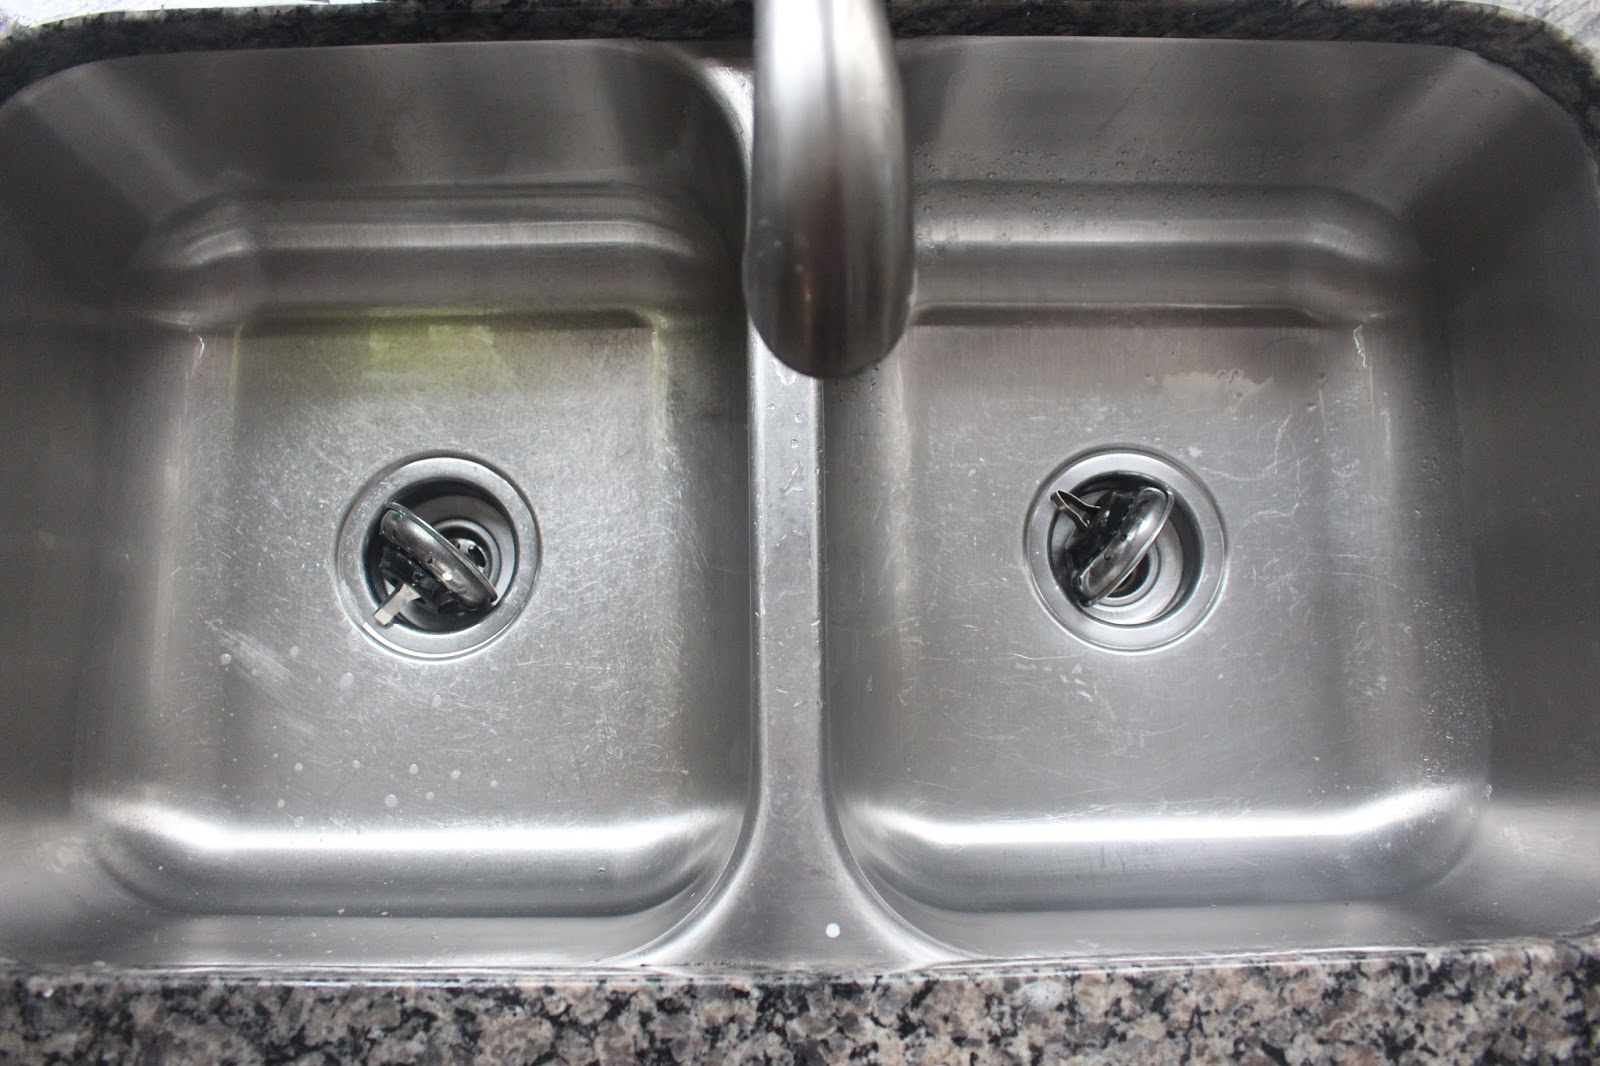 How To Clean Your Kitchen Sink! - The Glam Farmhouse